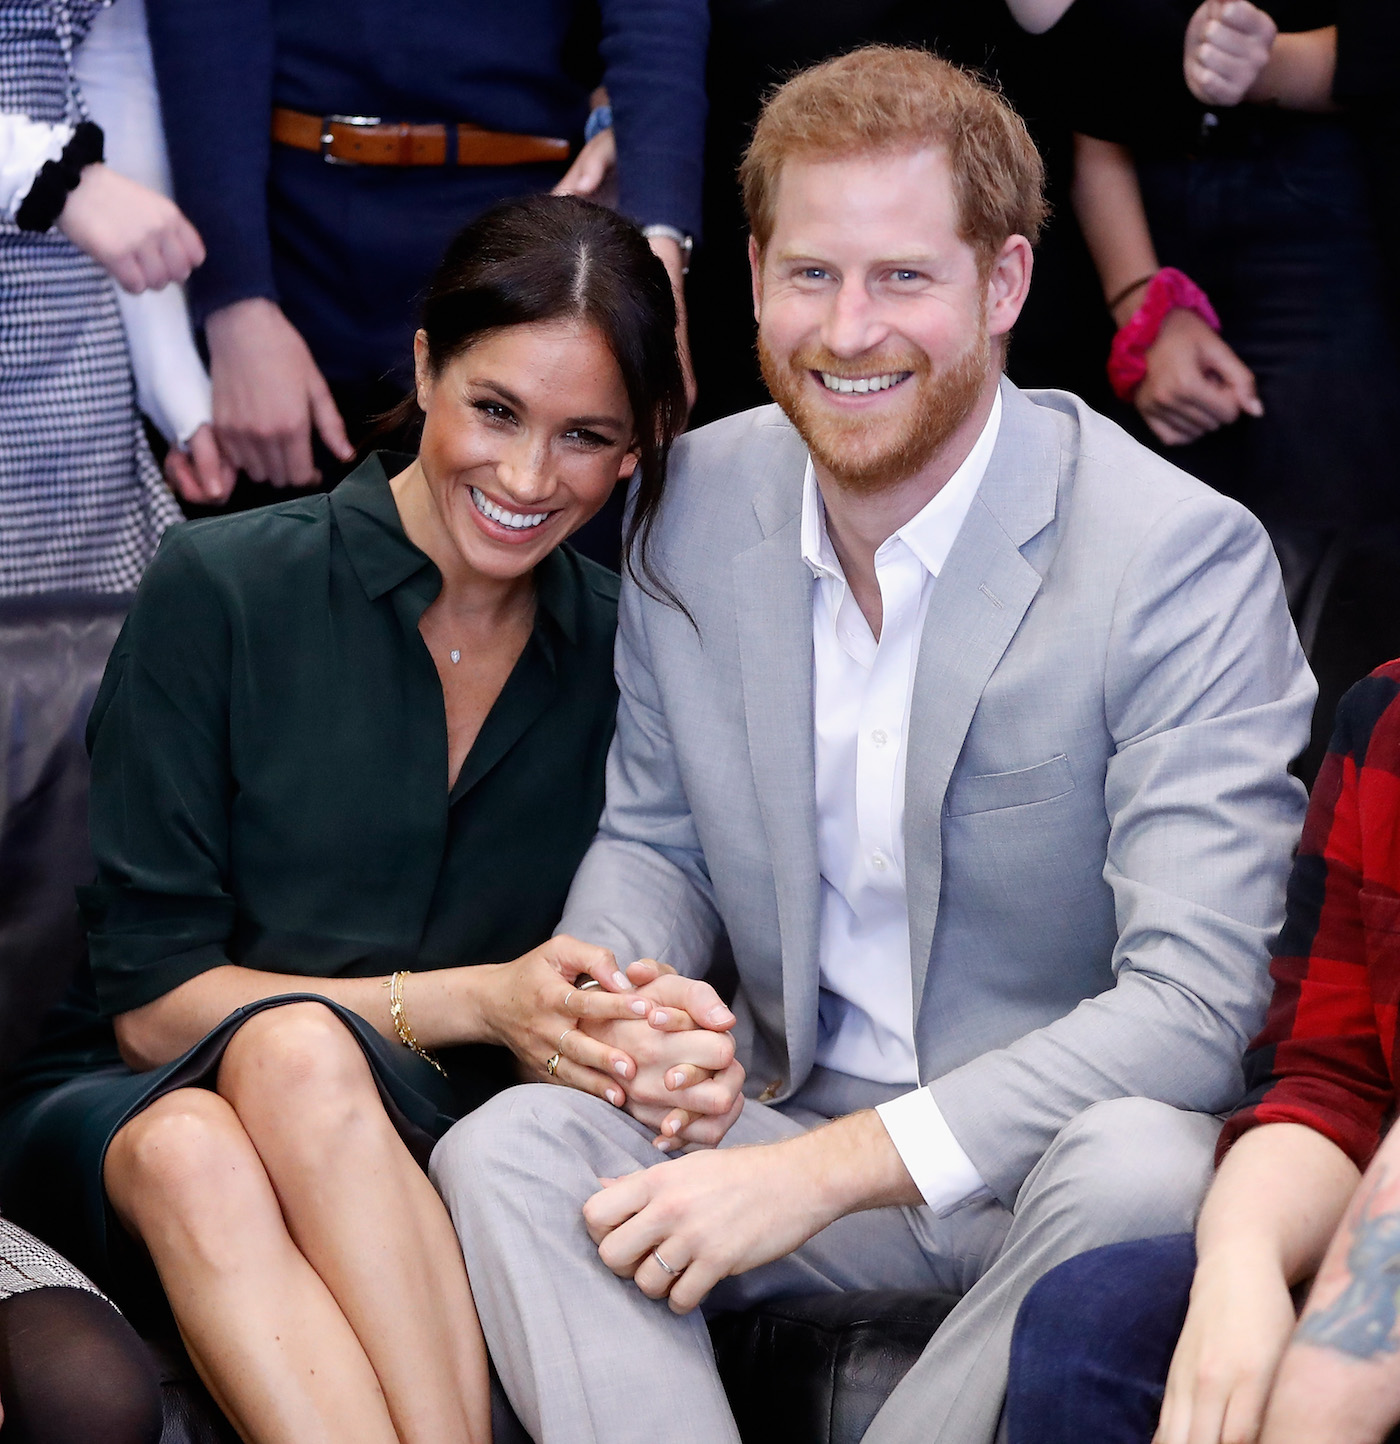 Duke and Duchess of Sussex Meghan Markle and Prince Harry